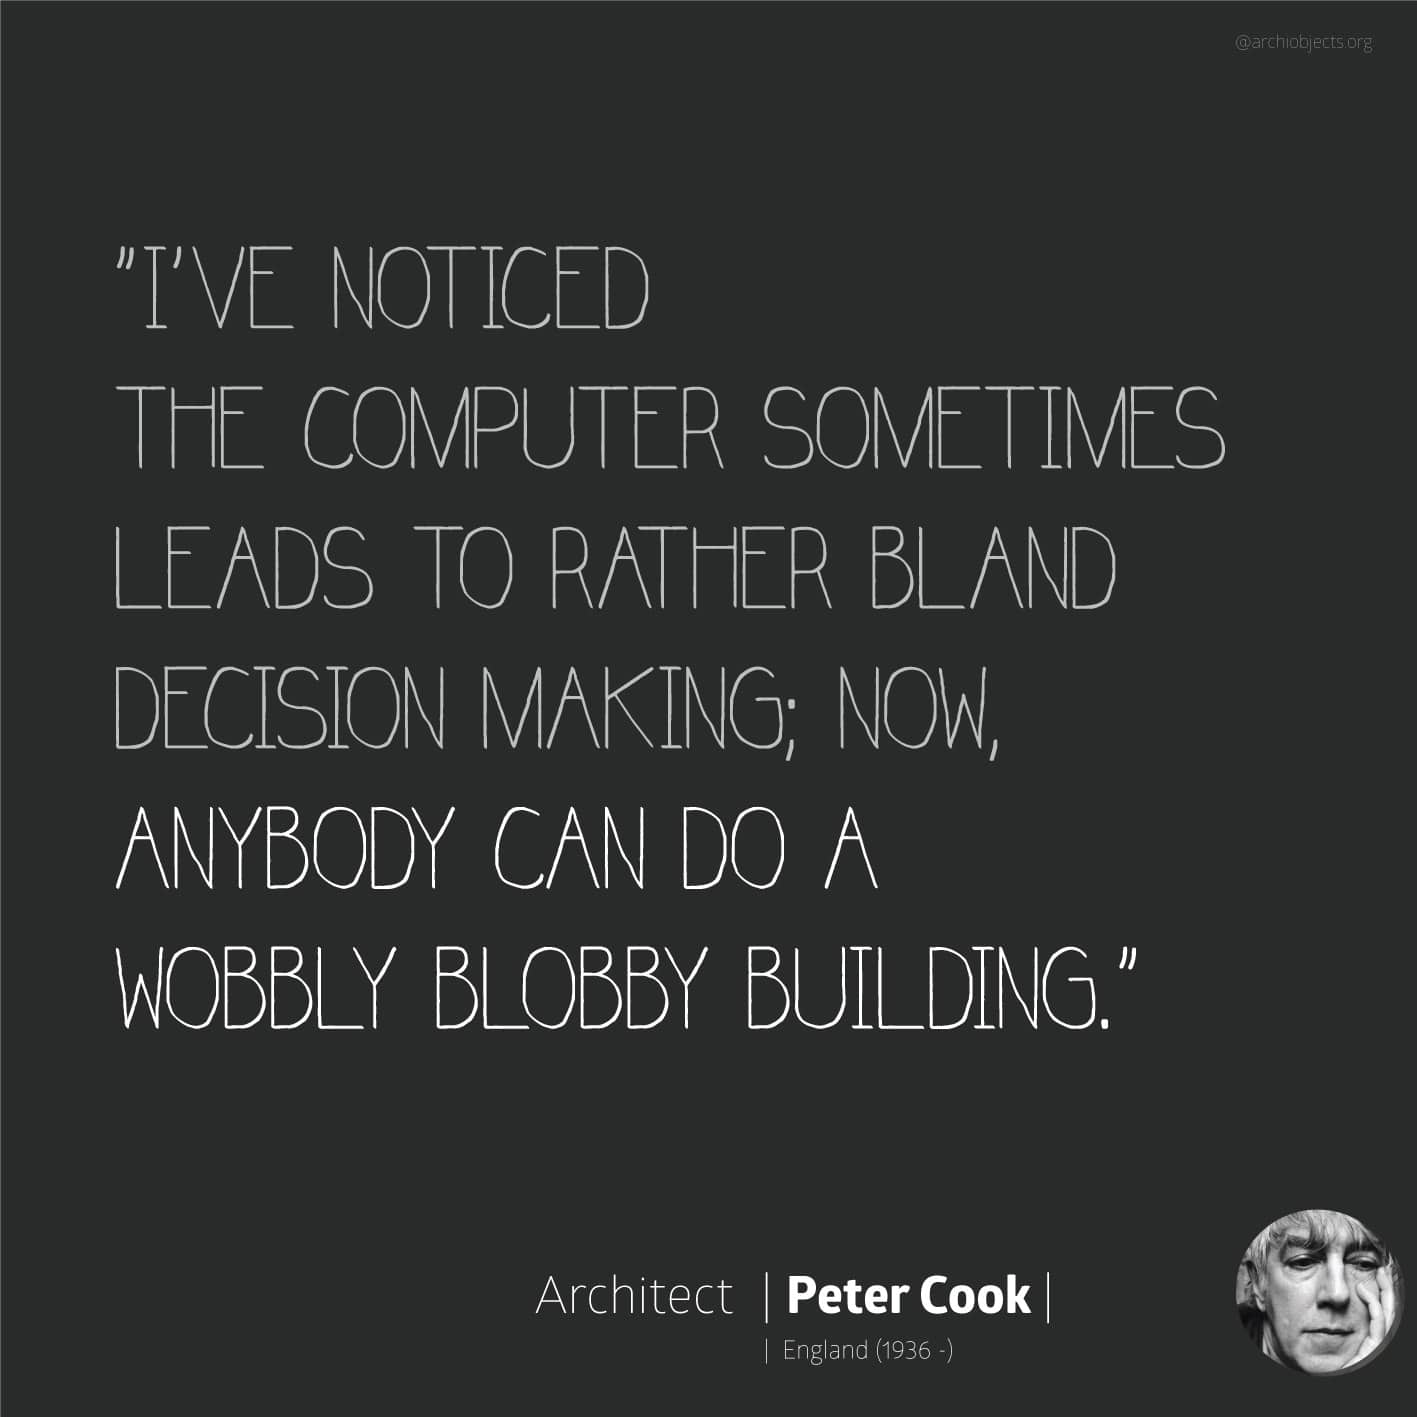 peter cook quote